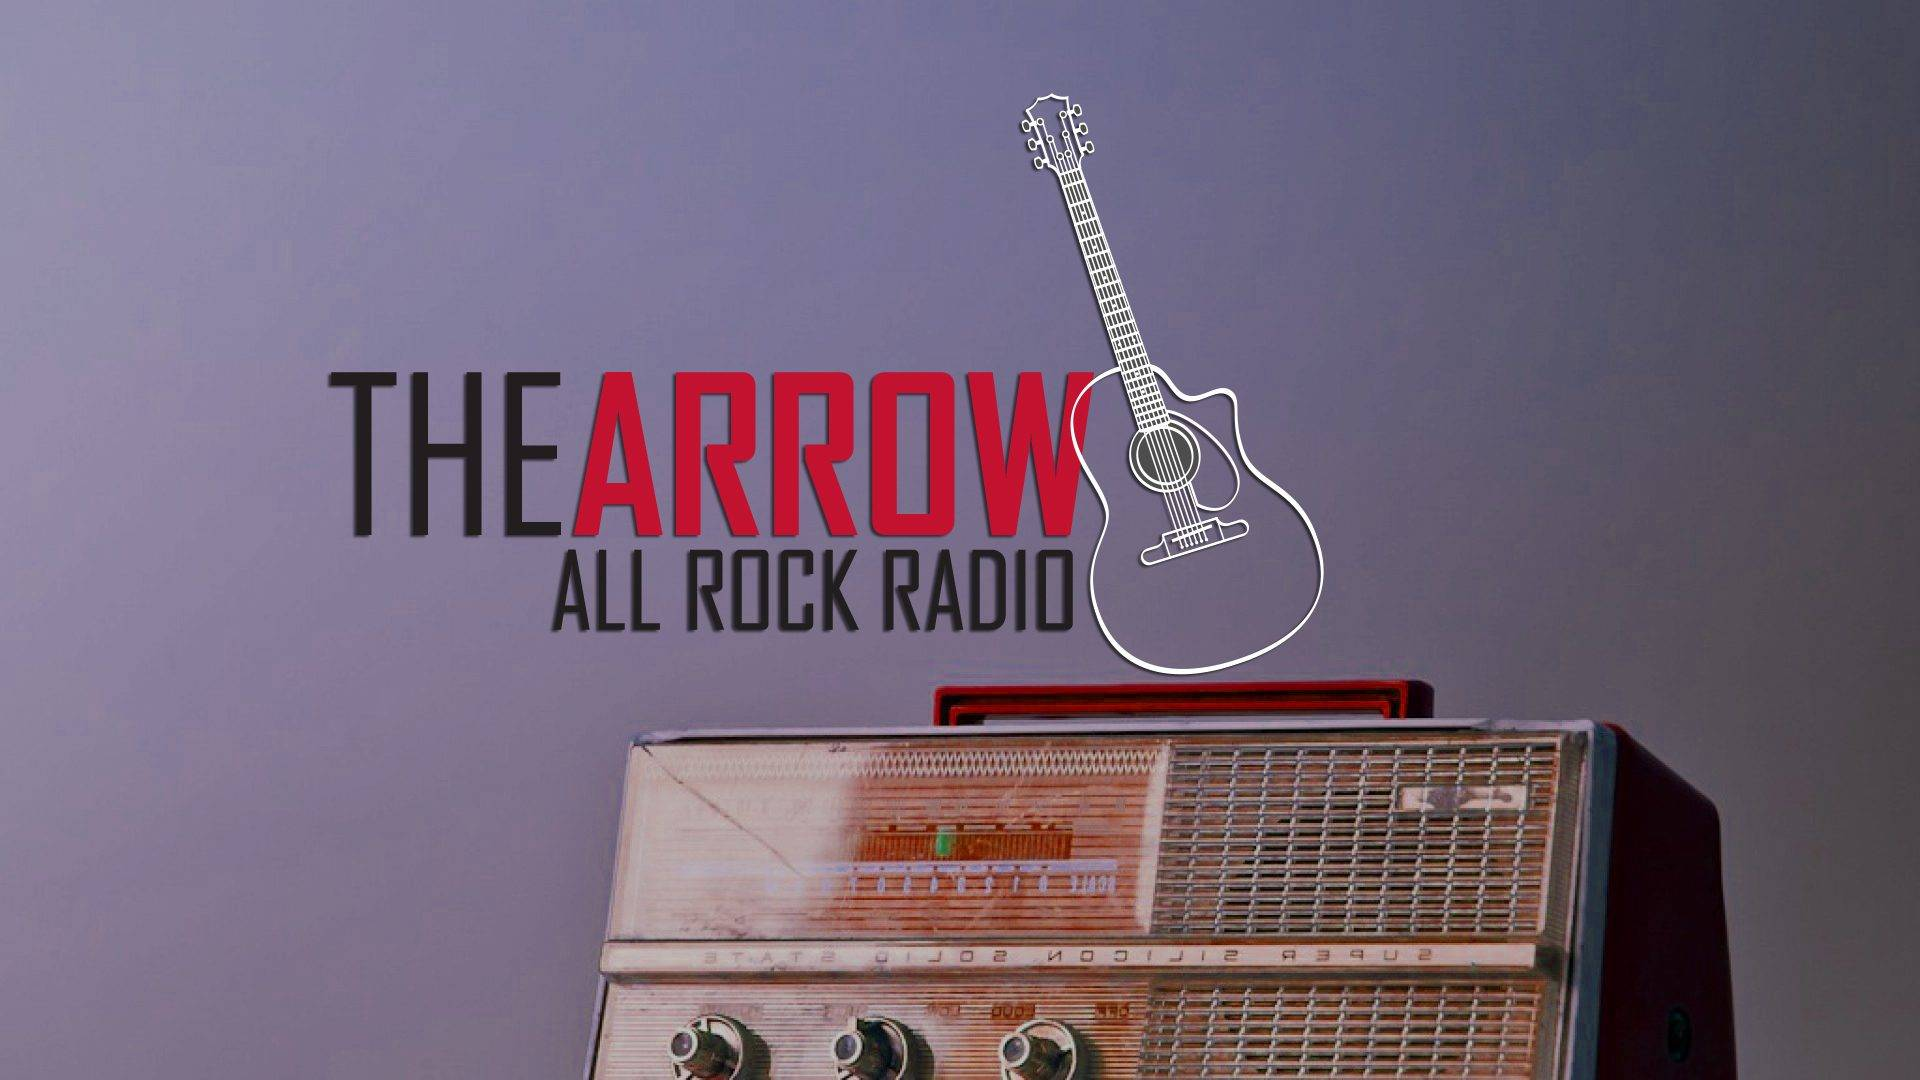 The Arrow All Rock Radio